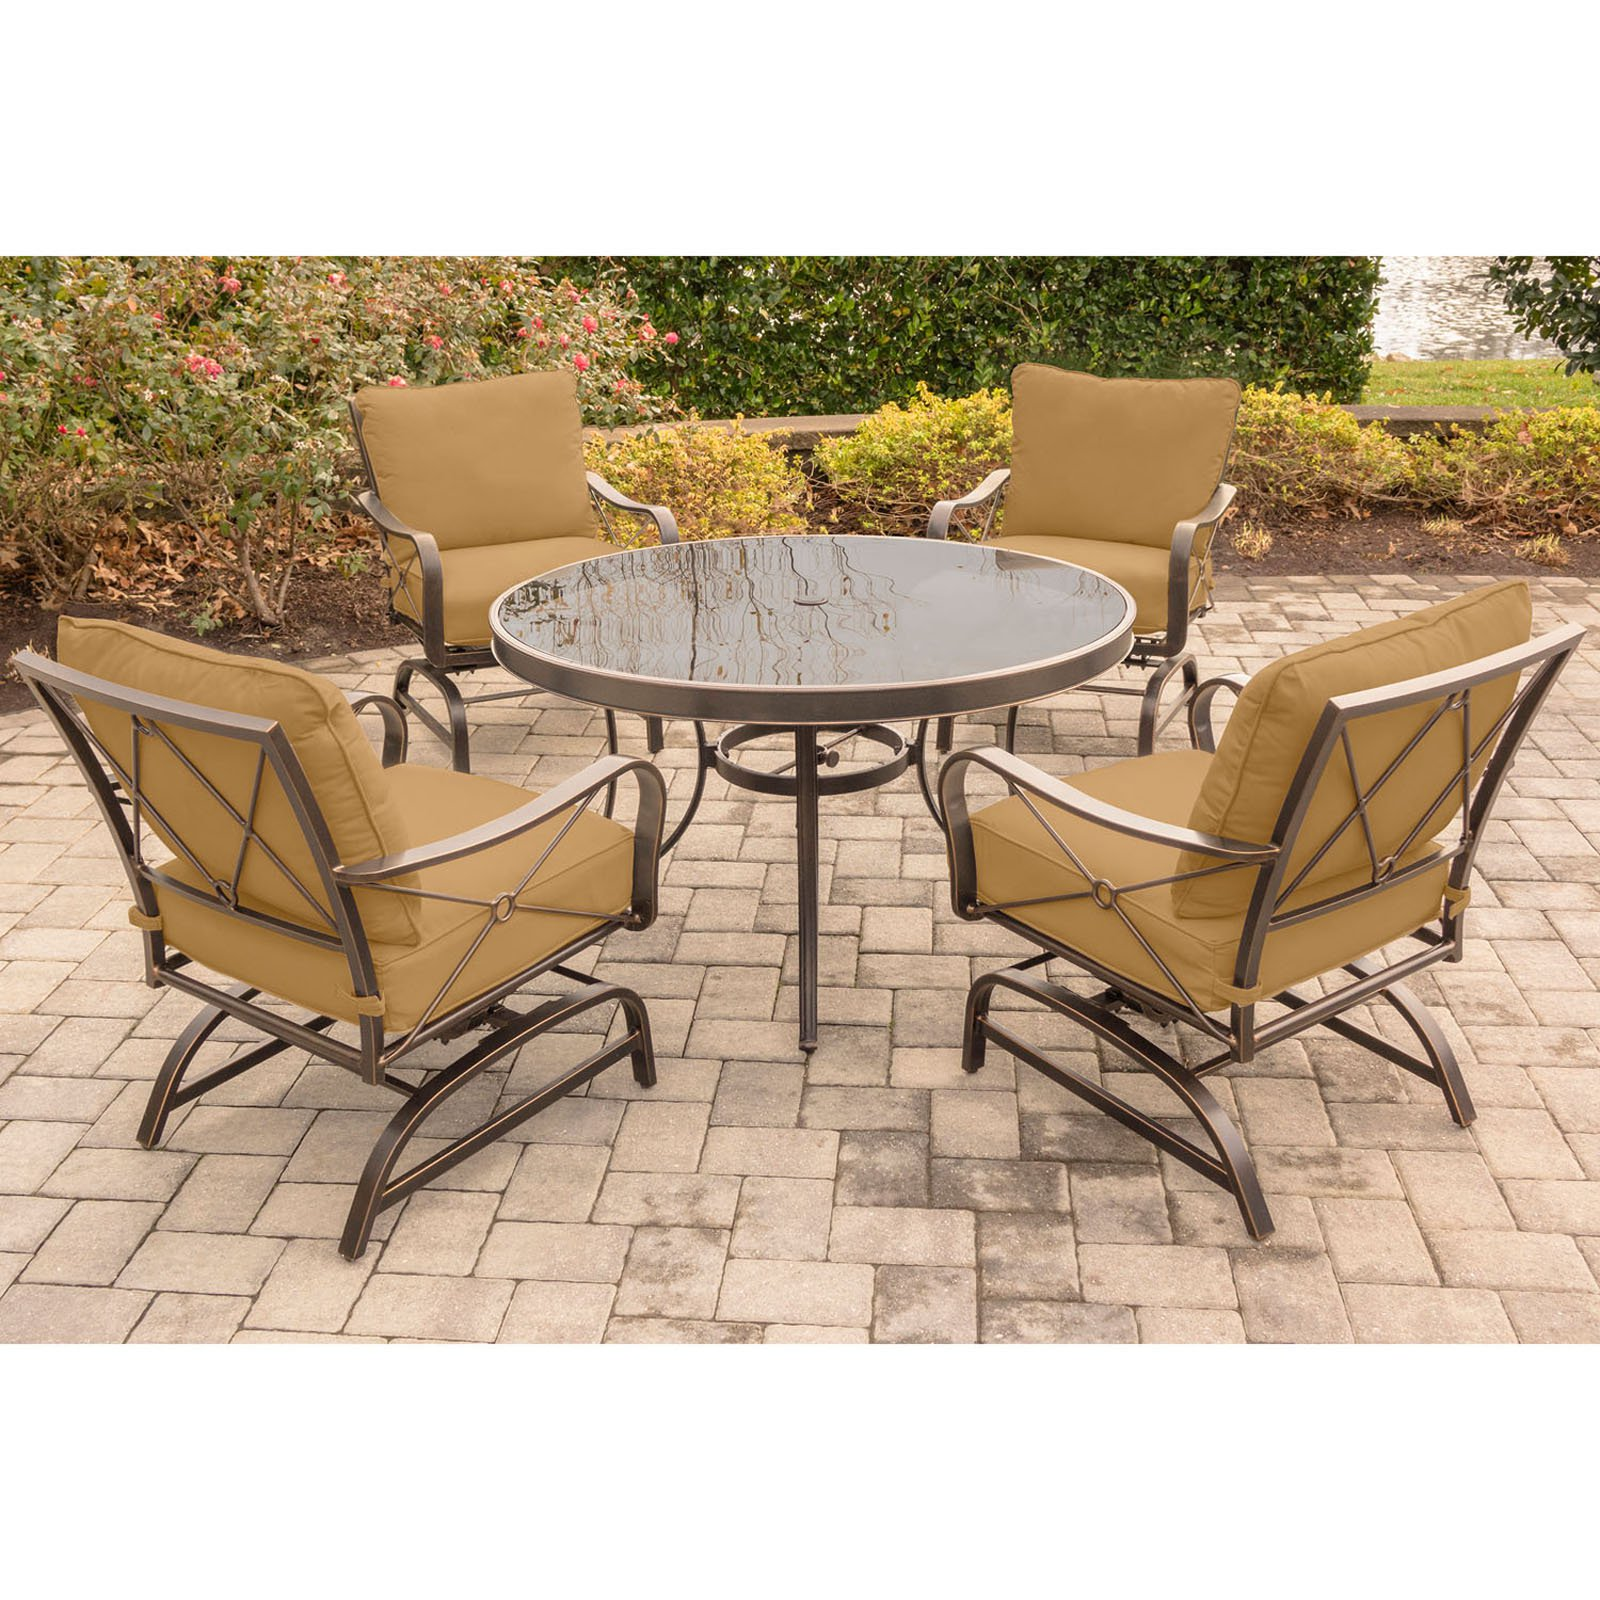 Hanover Outdoor Summer Nights 5-Piece Chat Set with Glass-Top Table and Steel-Frame Rockers, Desert Sunset